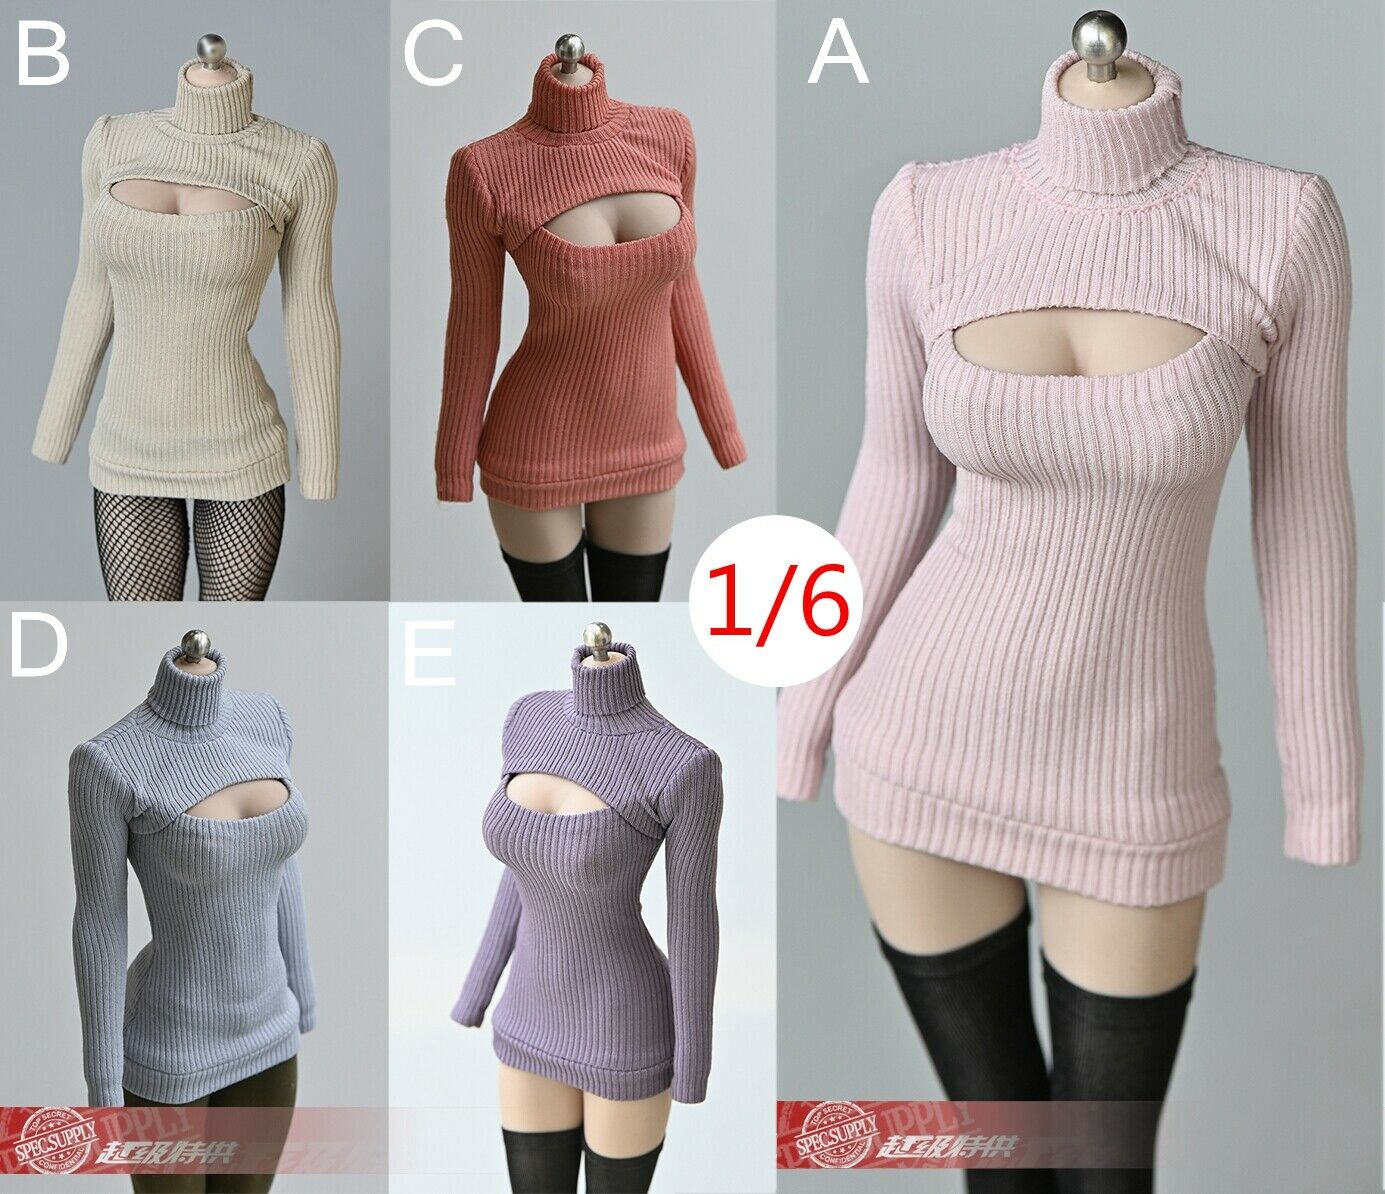 """tbleague - NEW PRODUCT: TBLeague: 1/6 scale """"Chubby"""" Female Body (2 styles, with or without a head sculpt) - Page 2 S-l1600"""